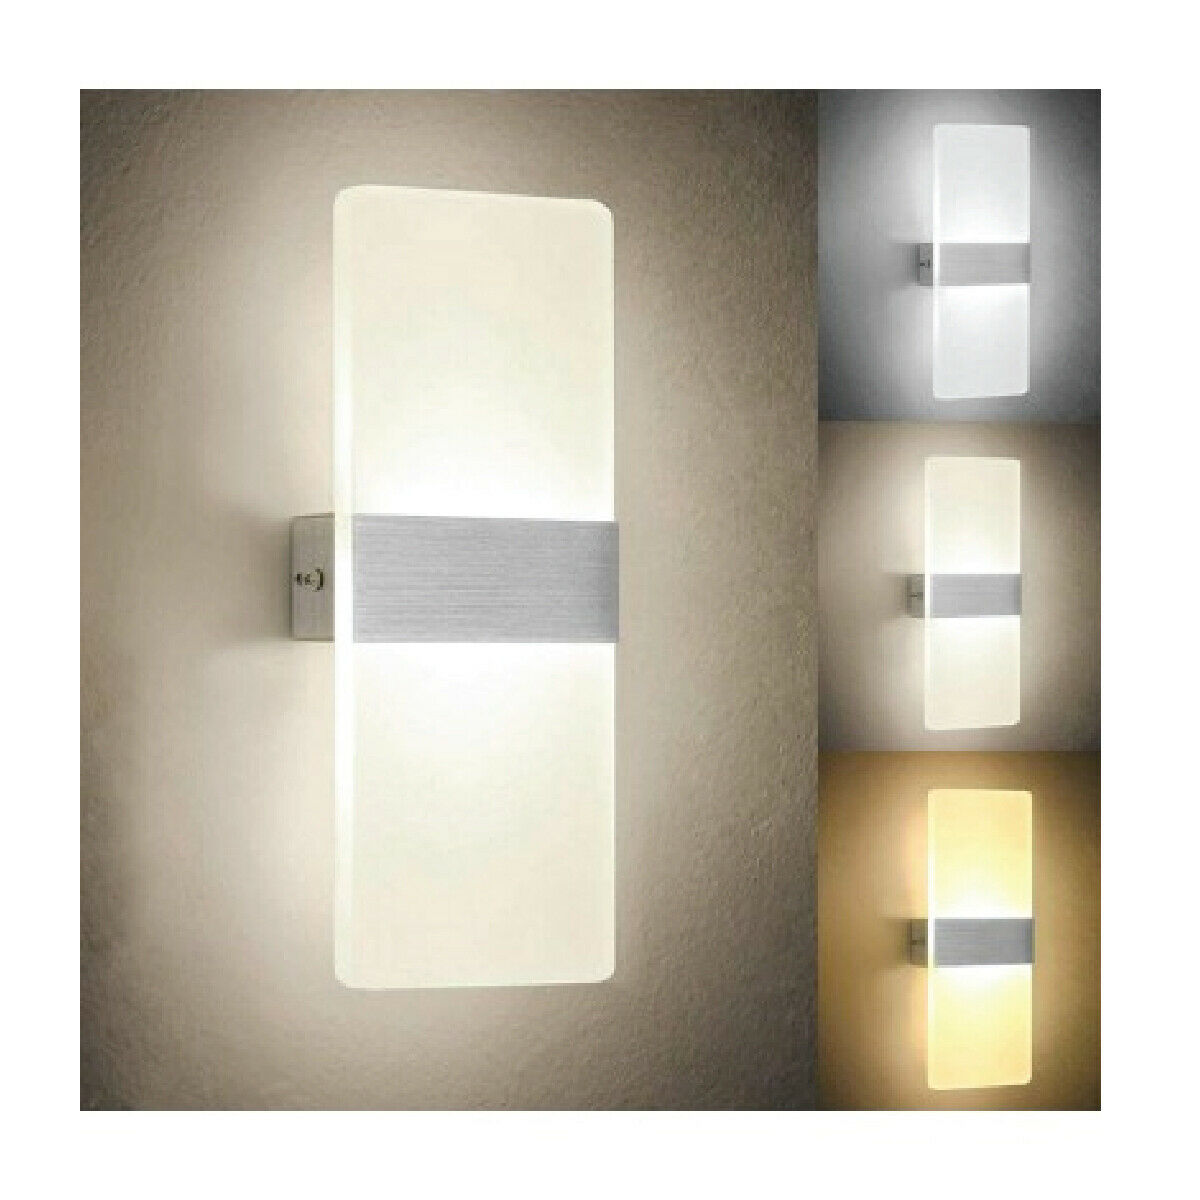 Applique led interno bianca vetro alluminio luce led - Lampadari da interno ...